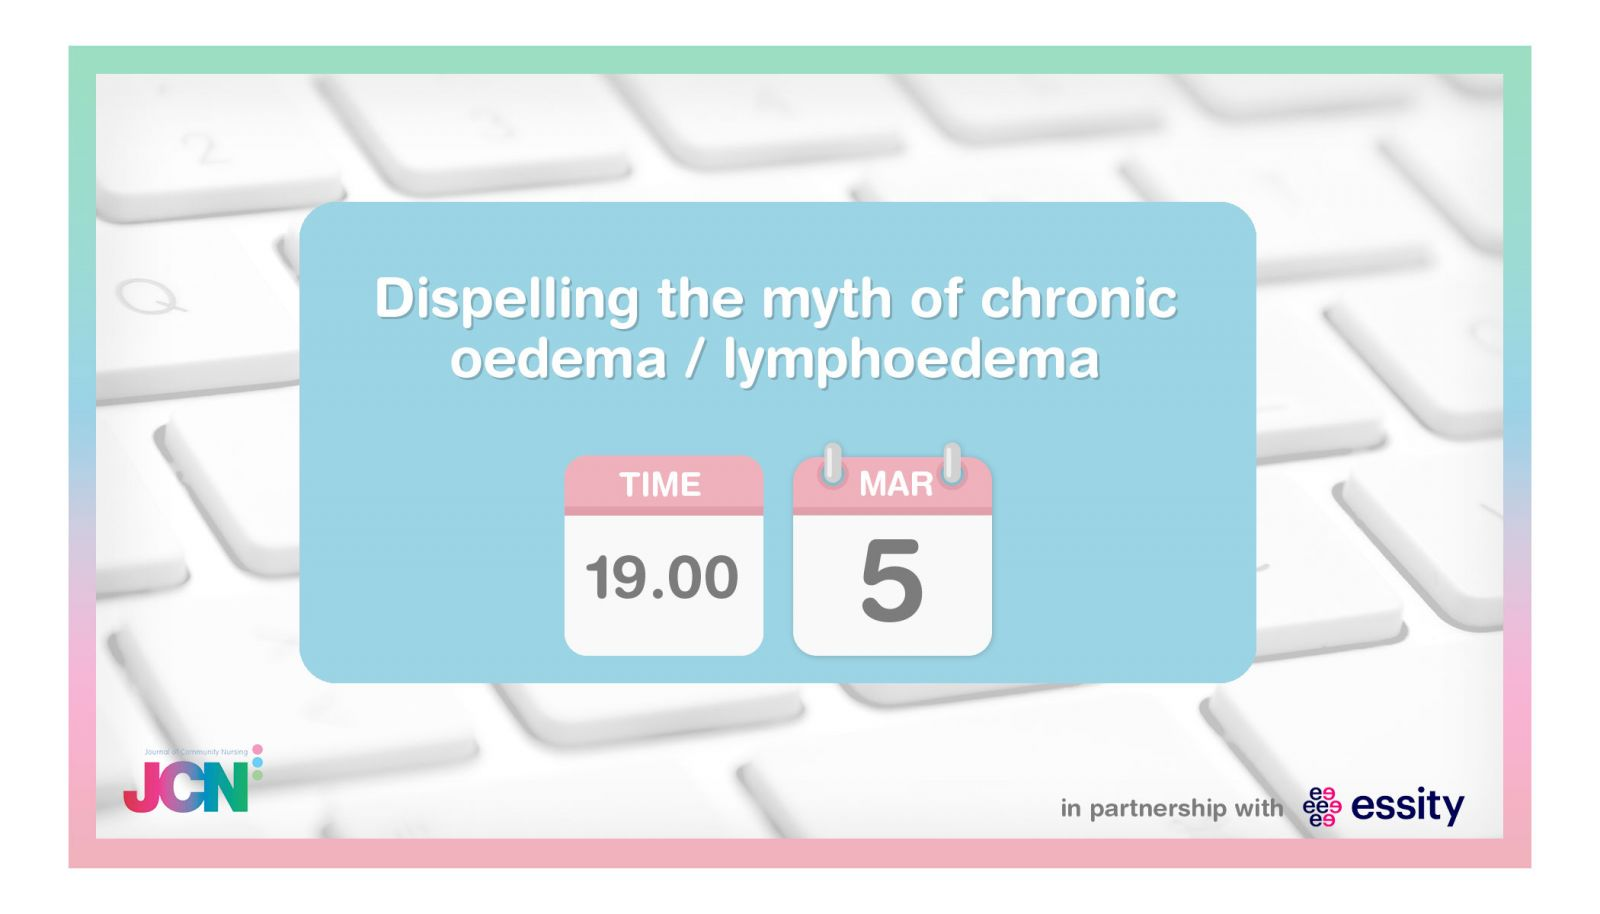 Facebook Live: Dispelling the myth of chronic oedema / lymphoedema